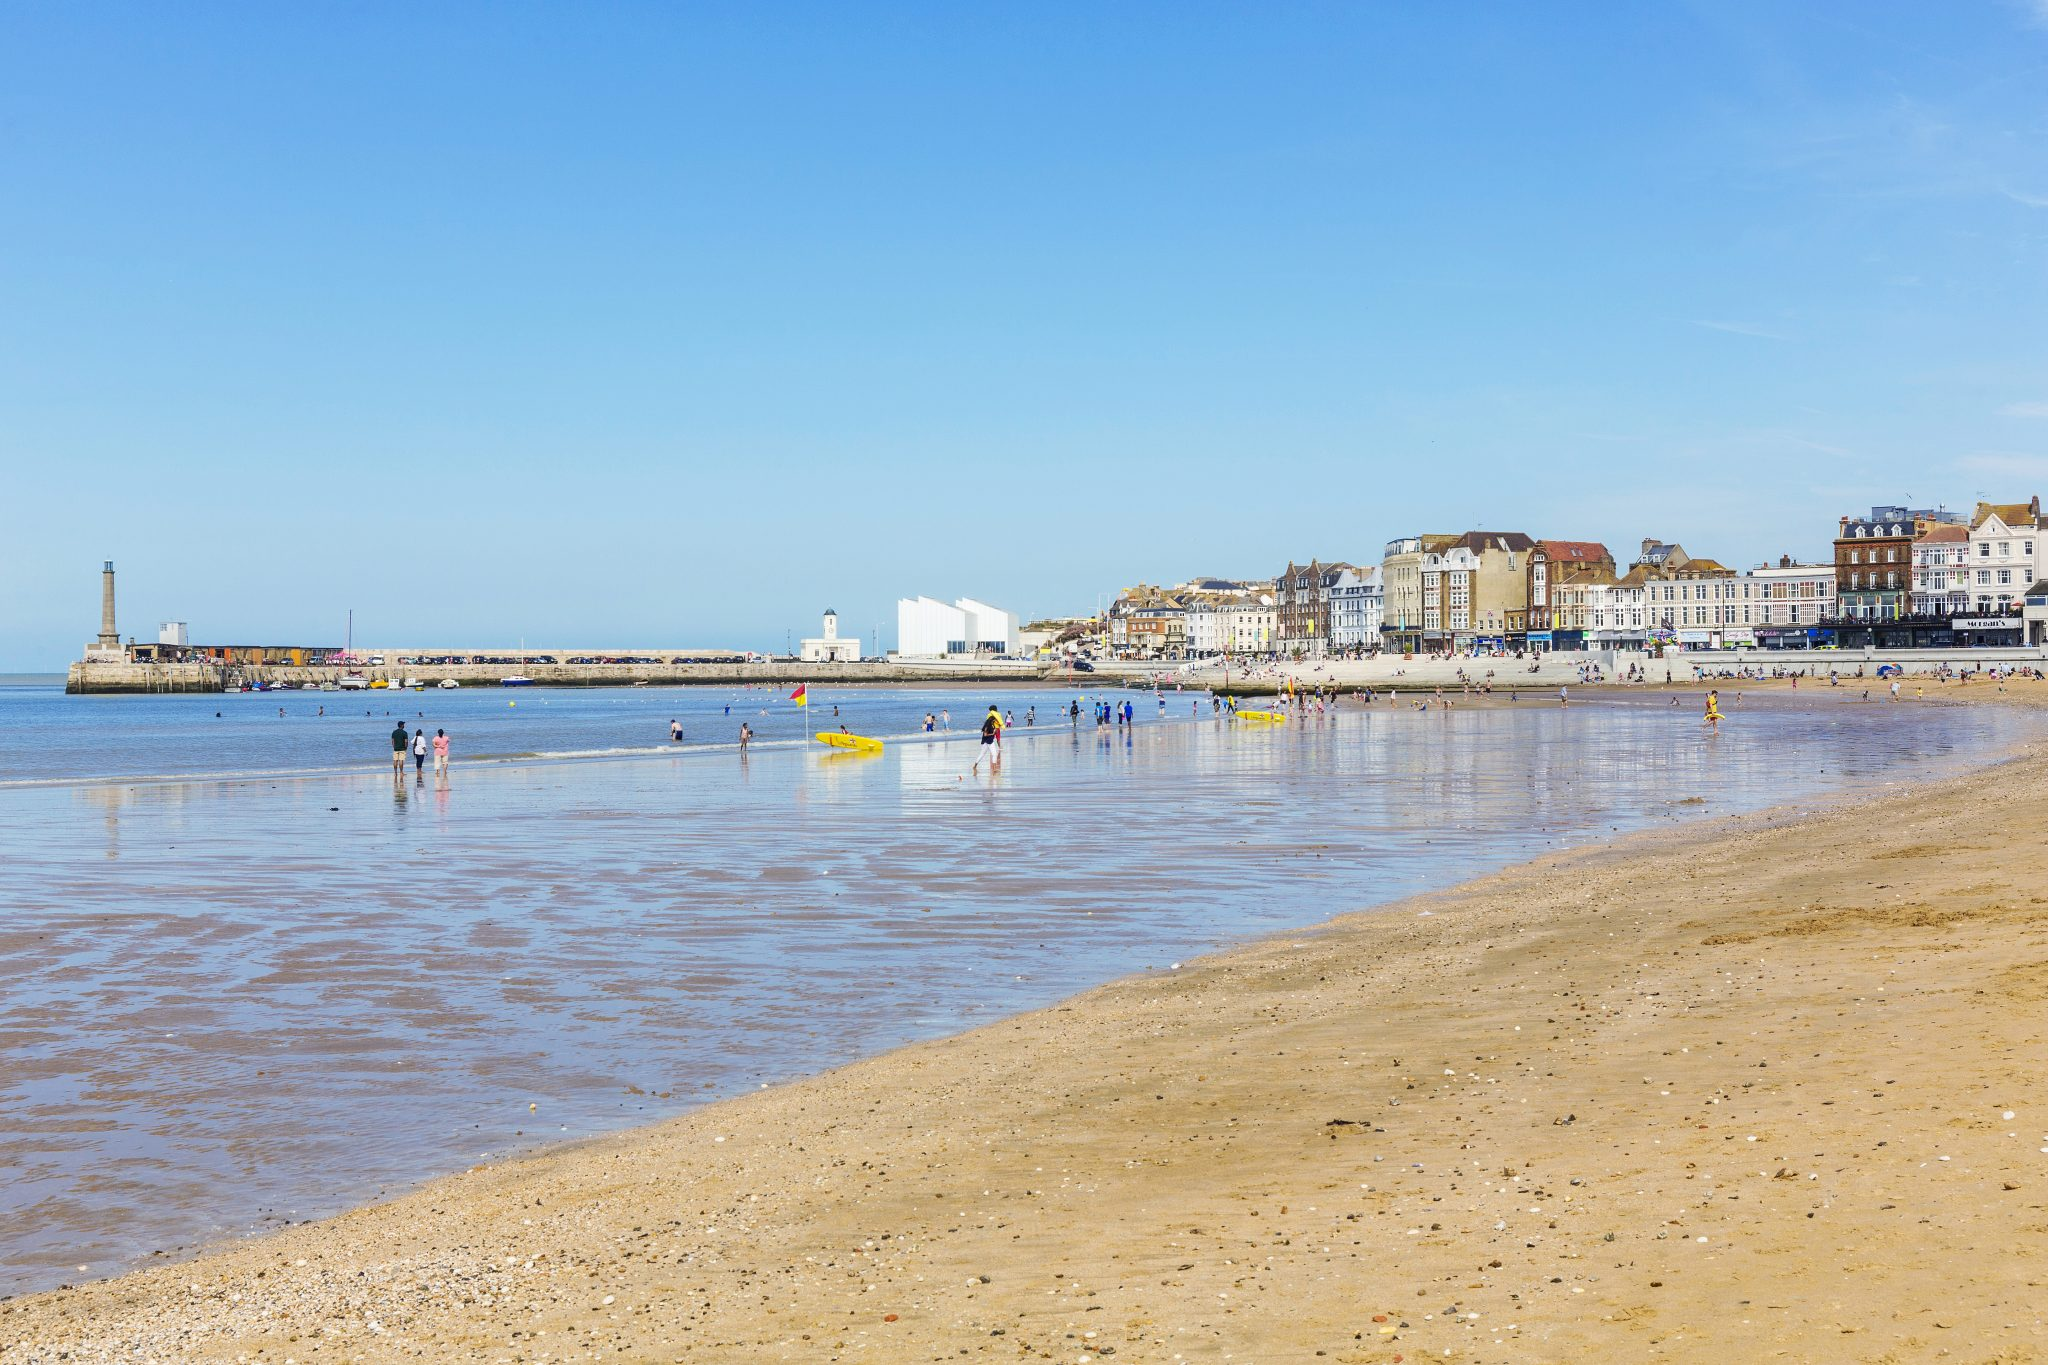 Oh we do like to be beside the Thanet seaside